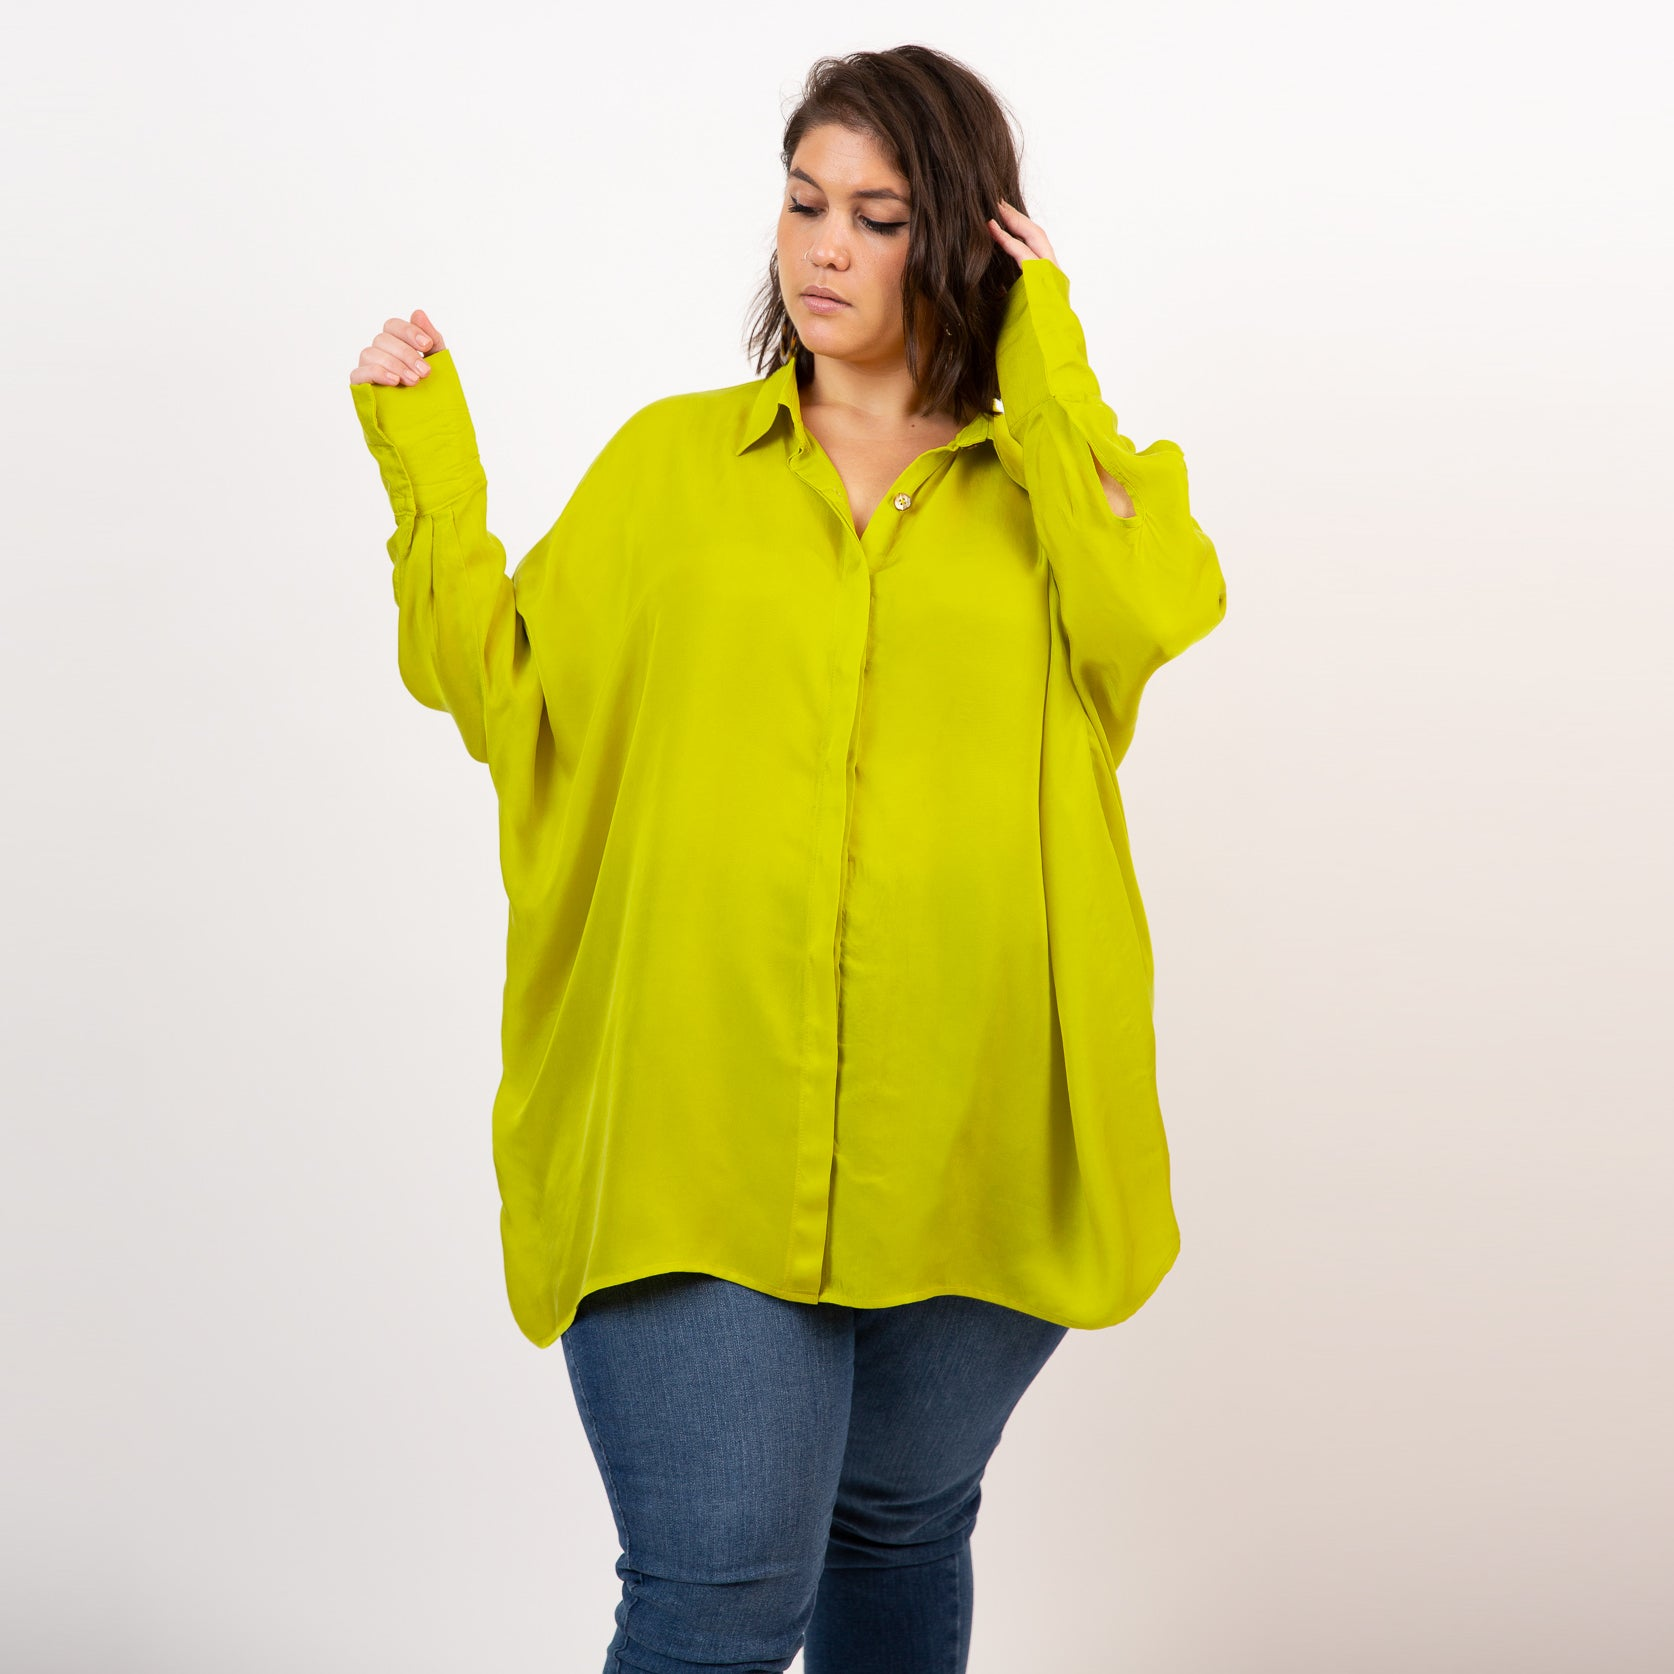 Oversized plus size shirt Alice Alexander Catherine shirt